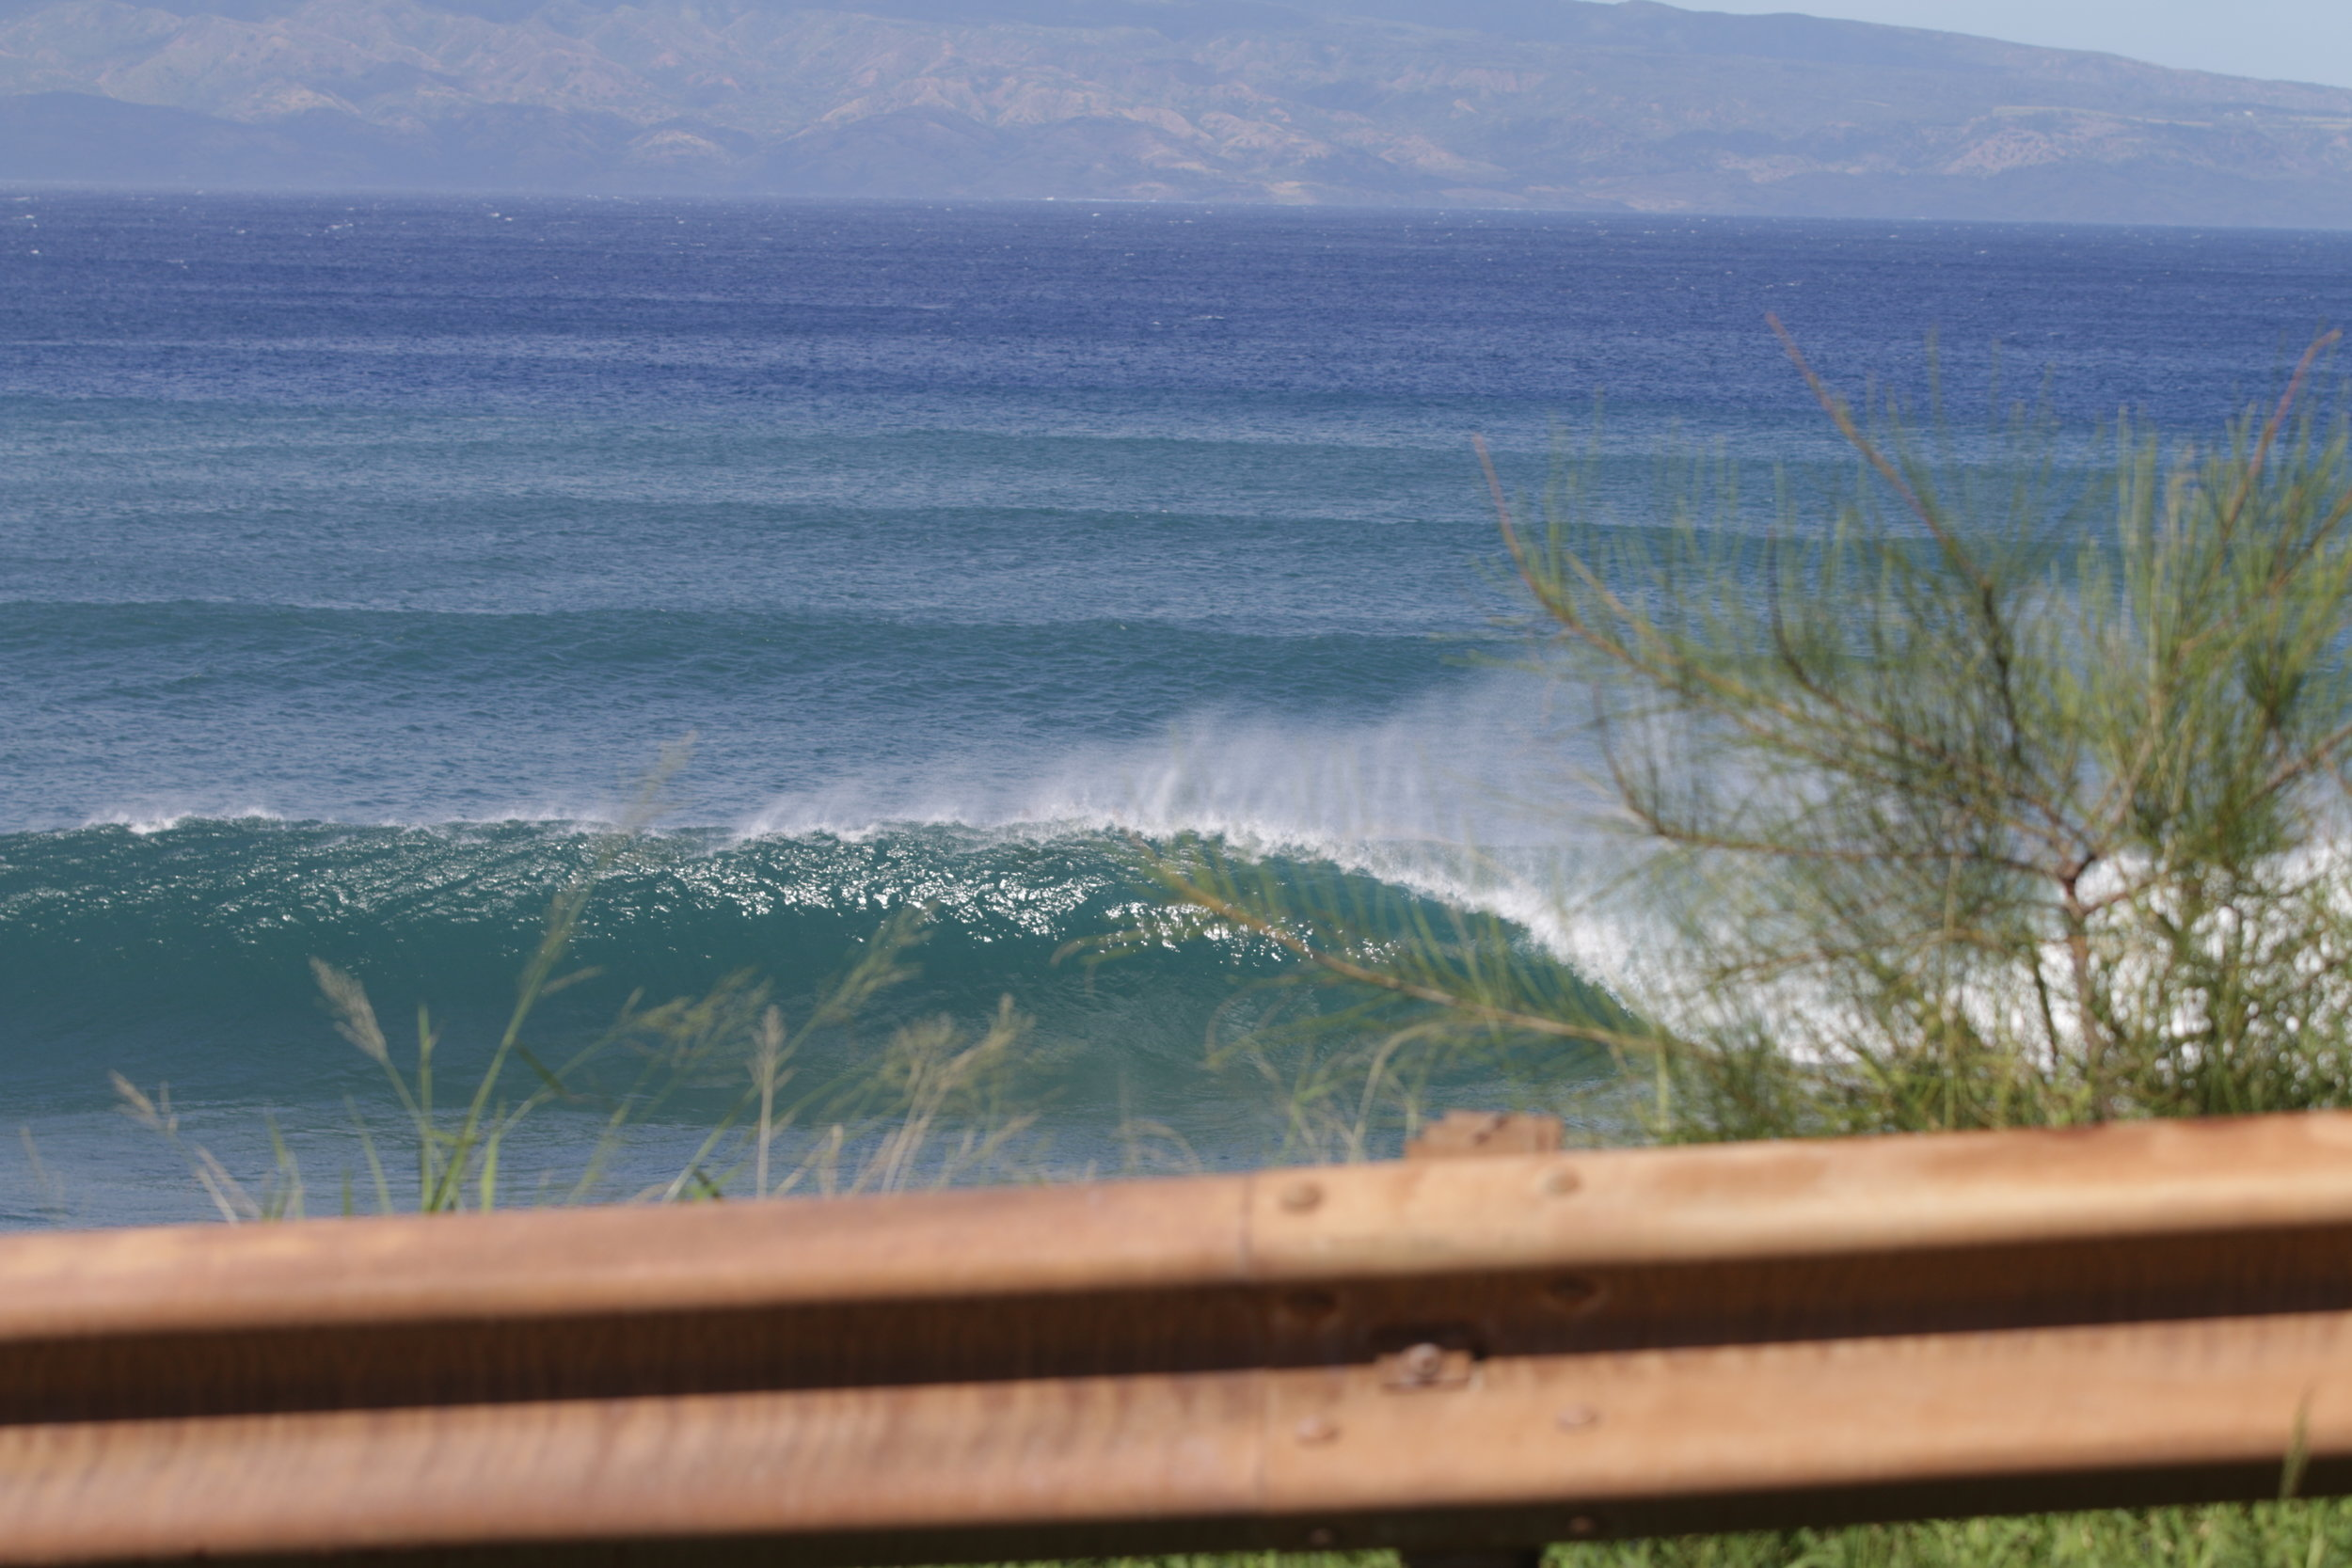 There was a solid pulse of NNW swell the last two days we were there. Not a bad way to end a surf trip.